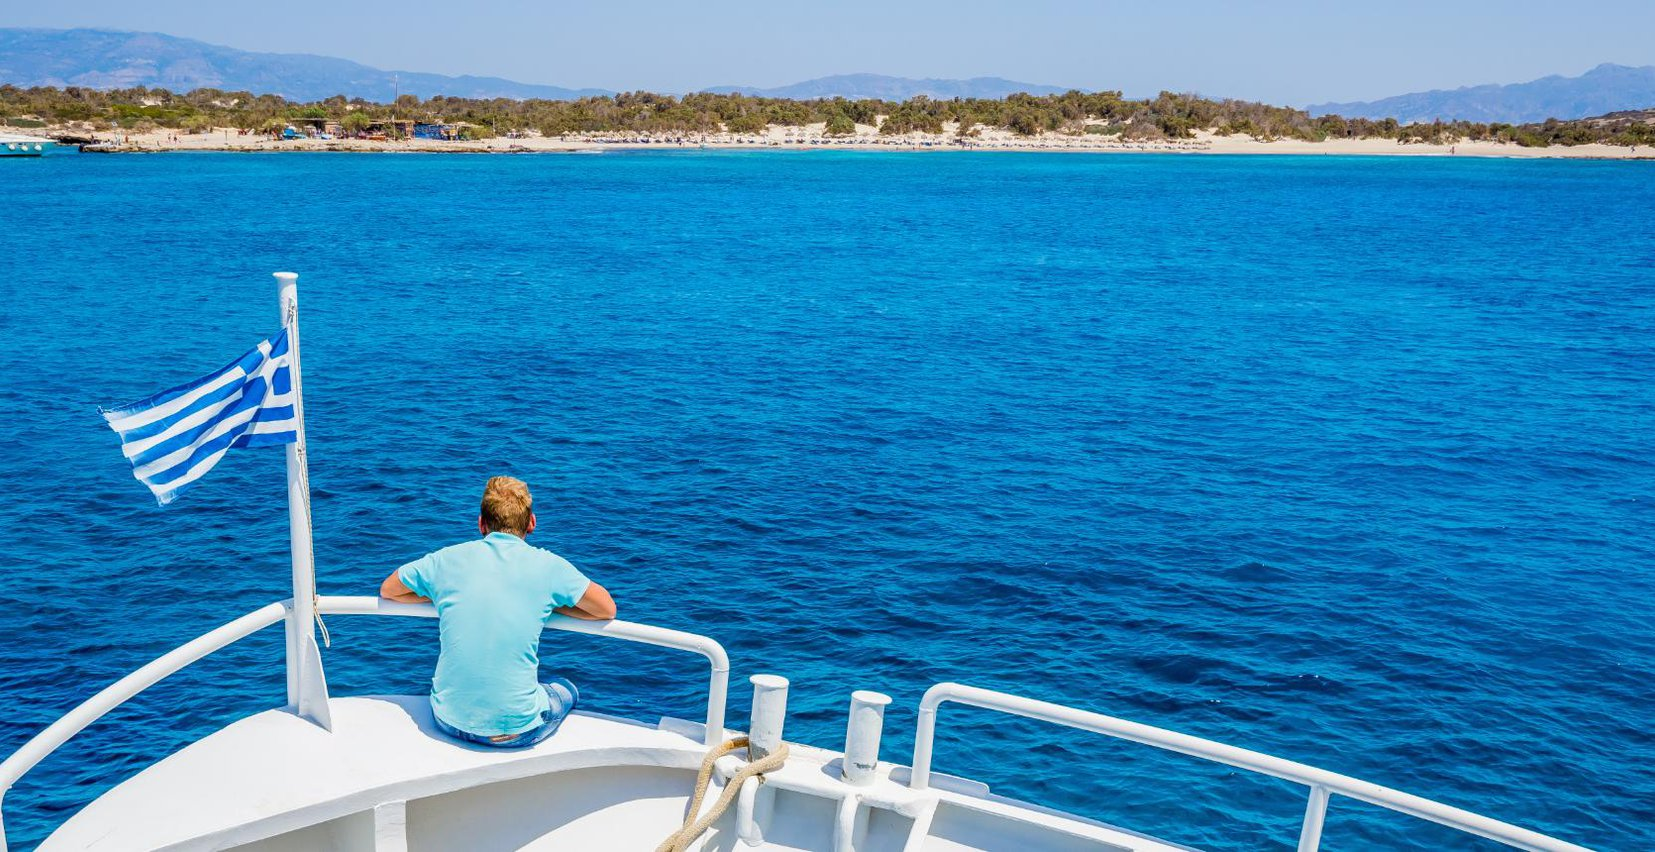 Man watching the sea from the stern of a boat in the sea